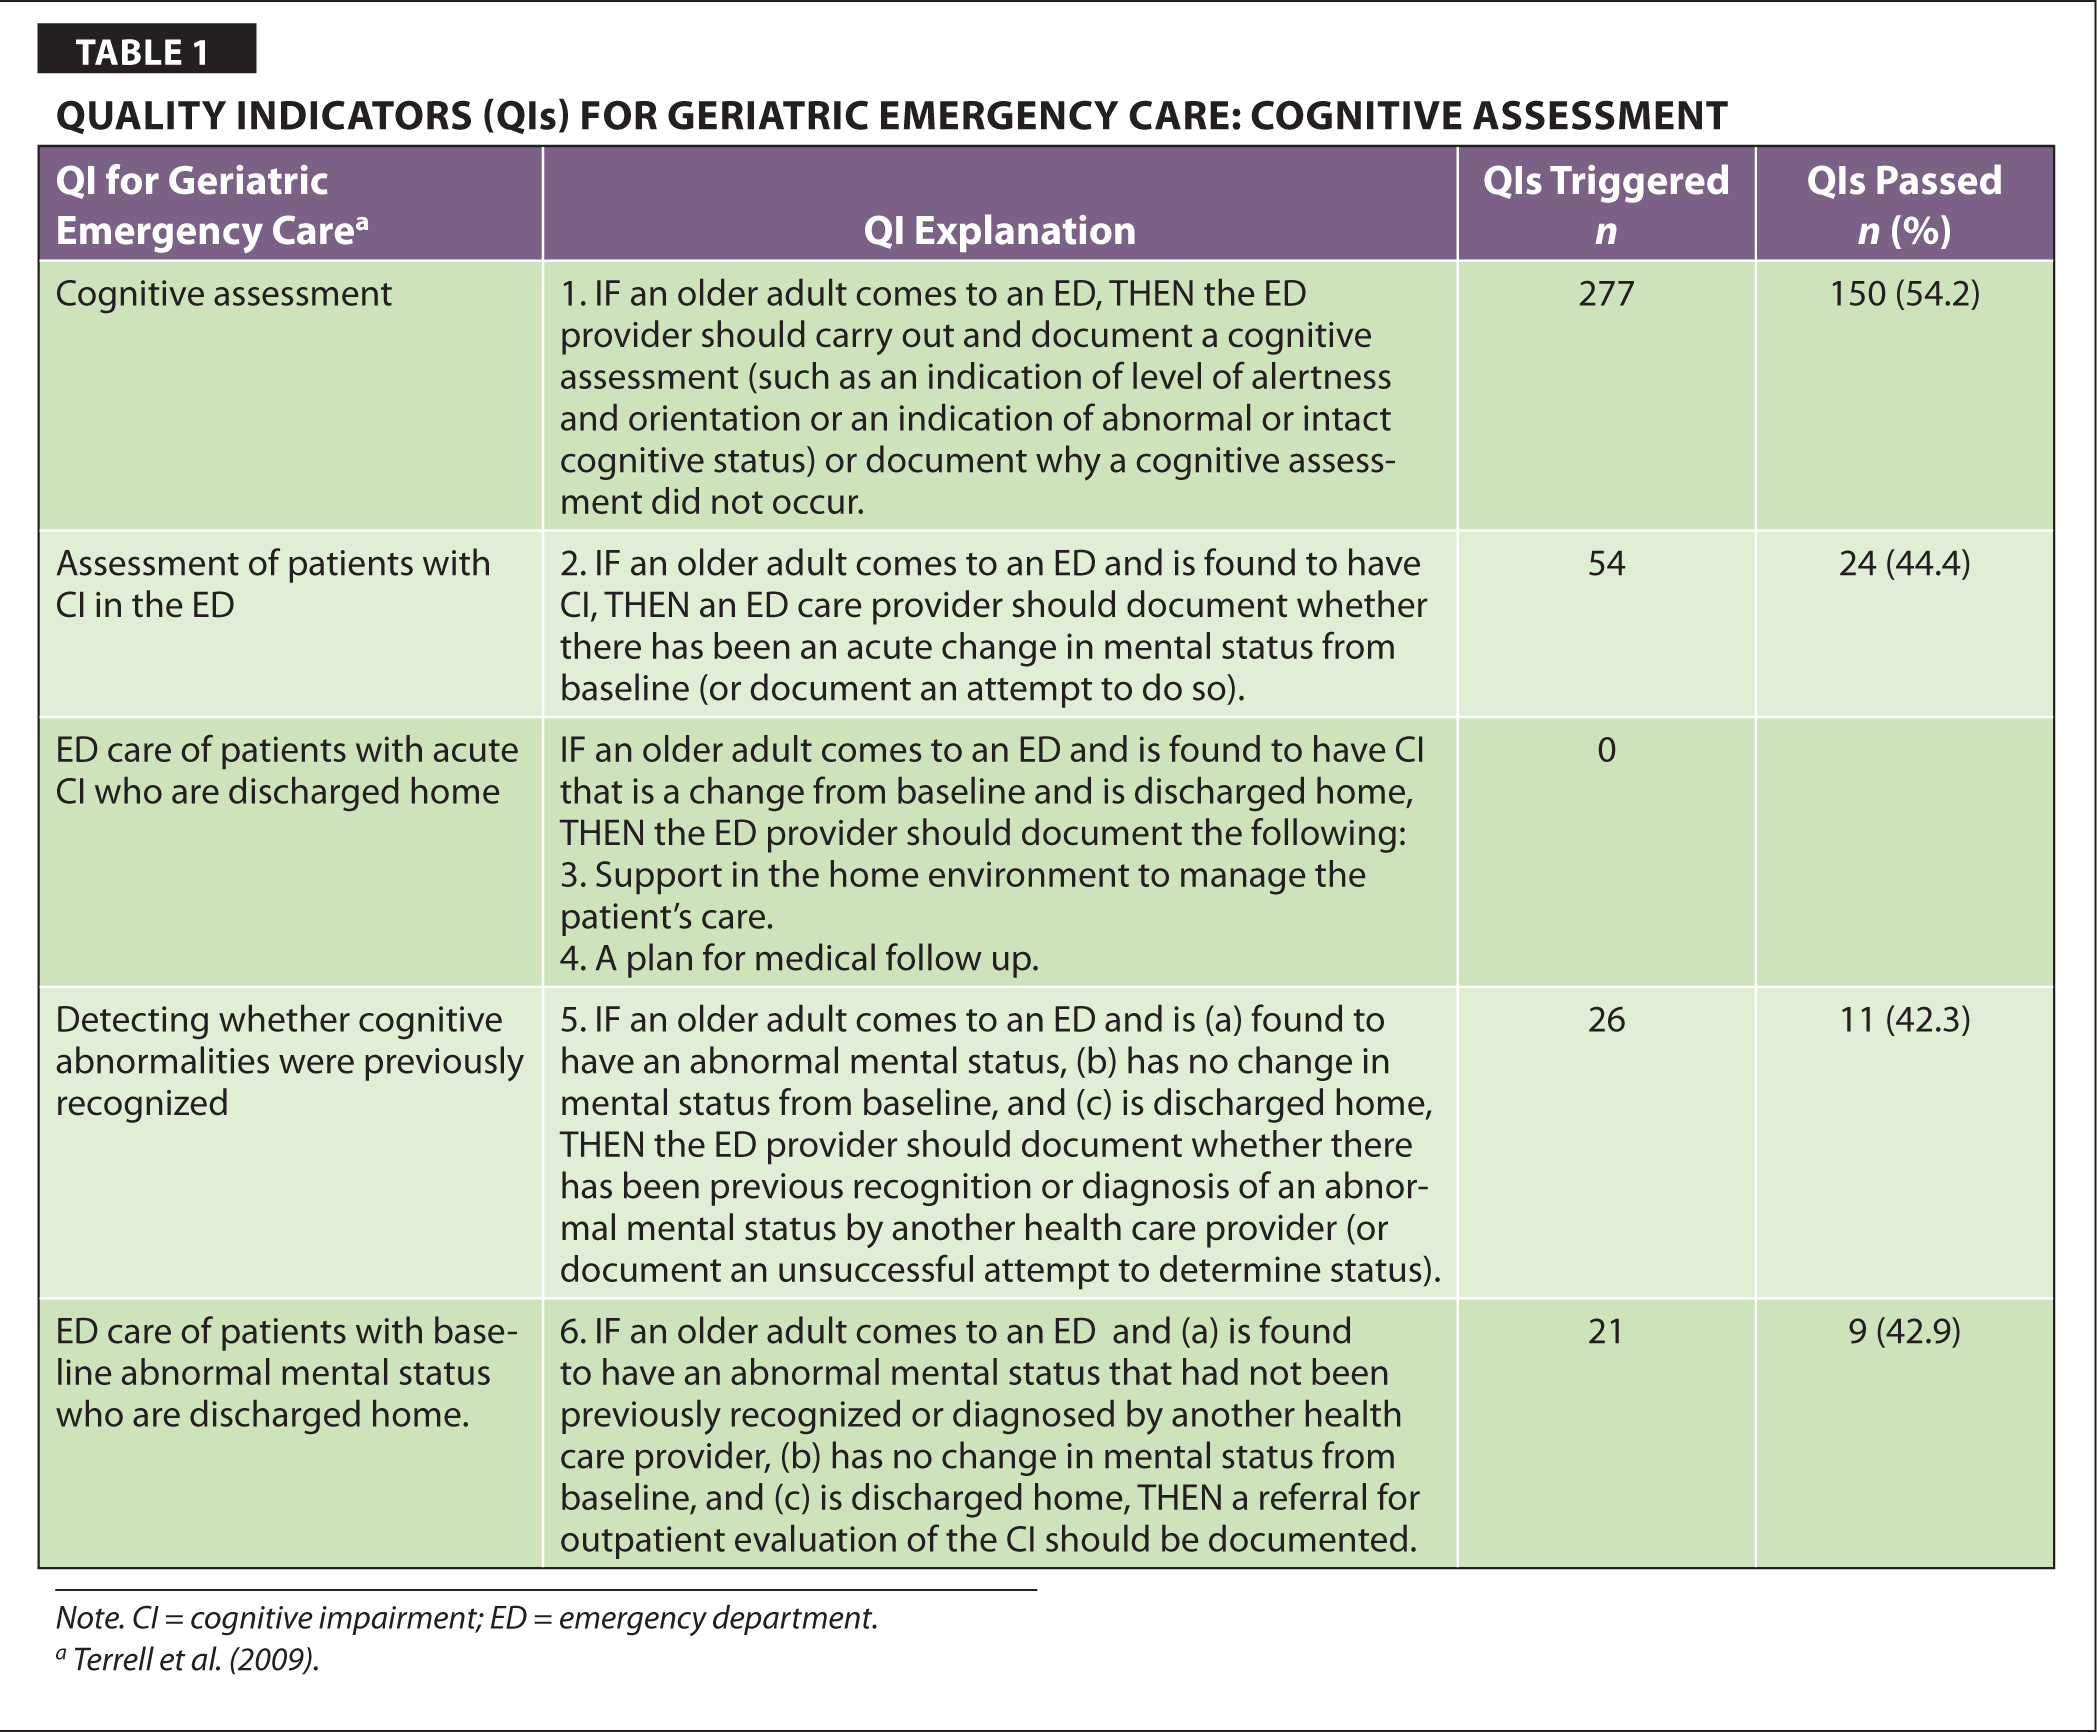 Quality Indicators (QIs) for Geriatric Emergency Care: Cognitive Assessment